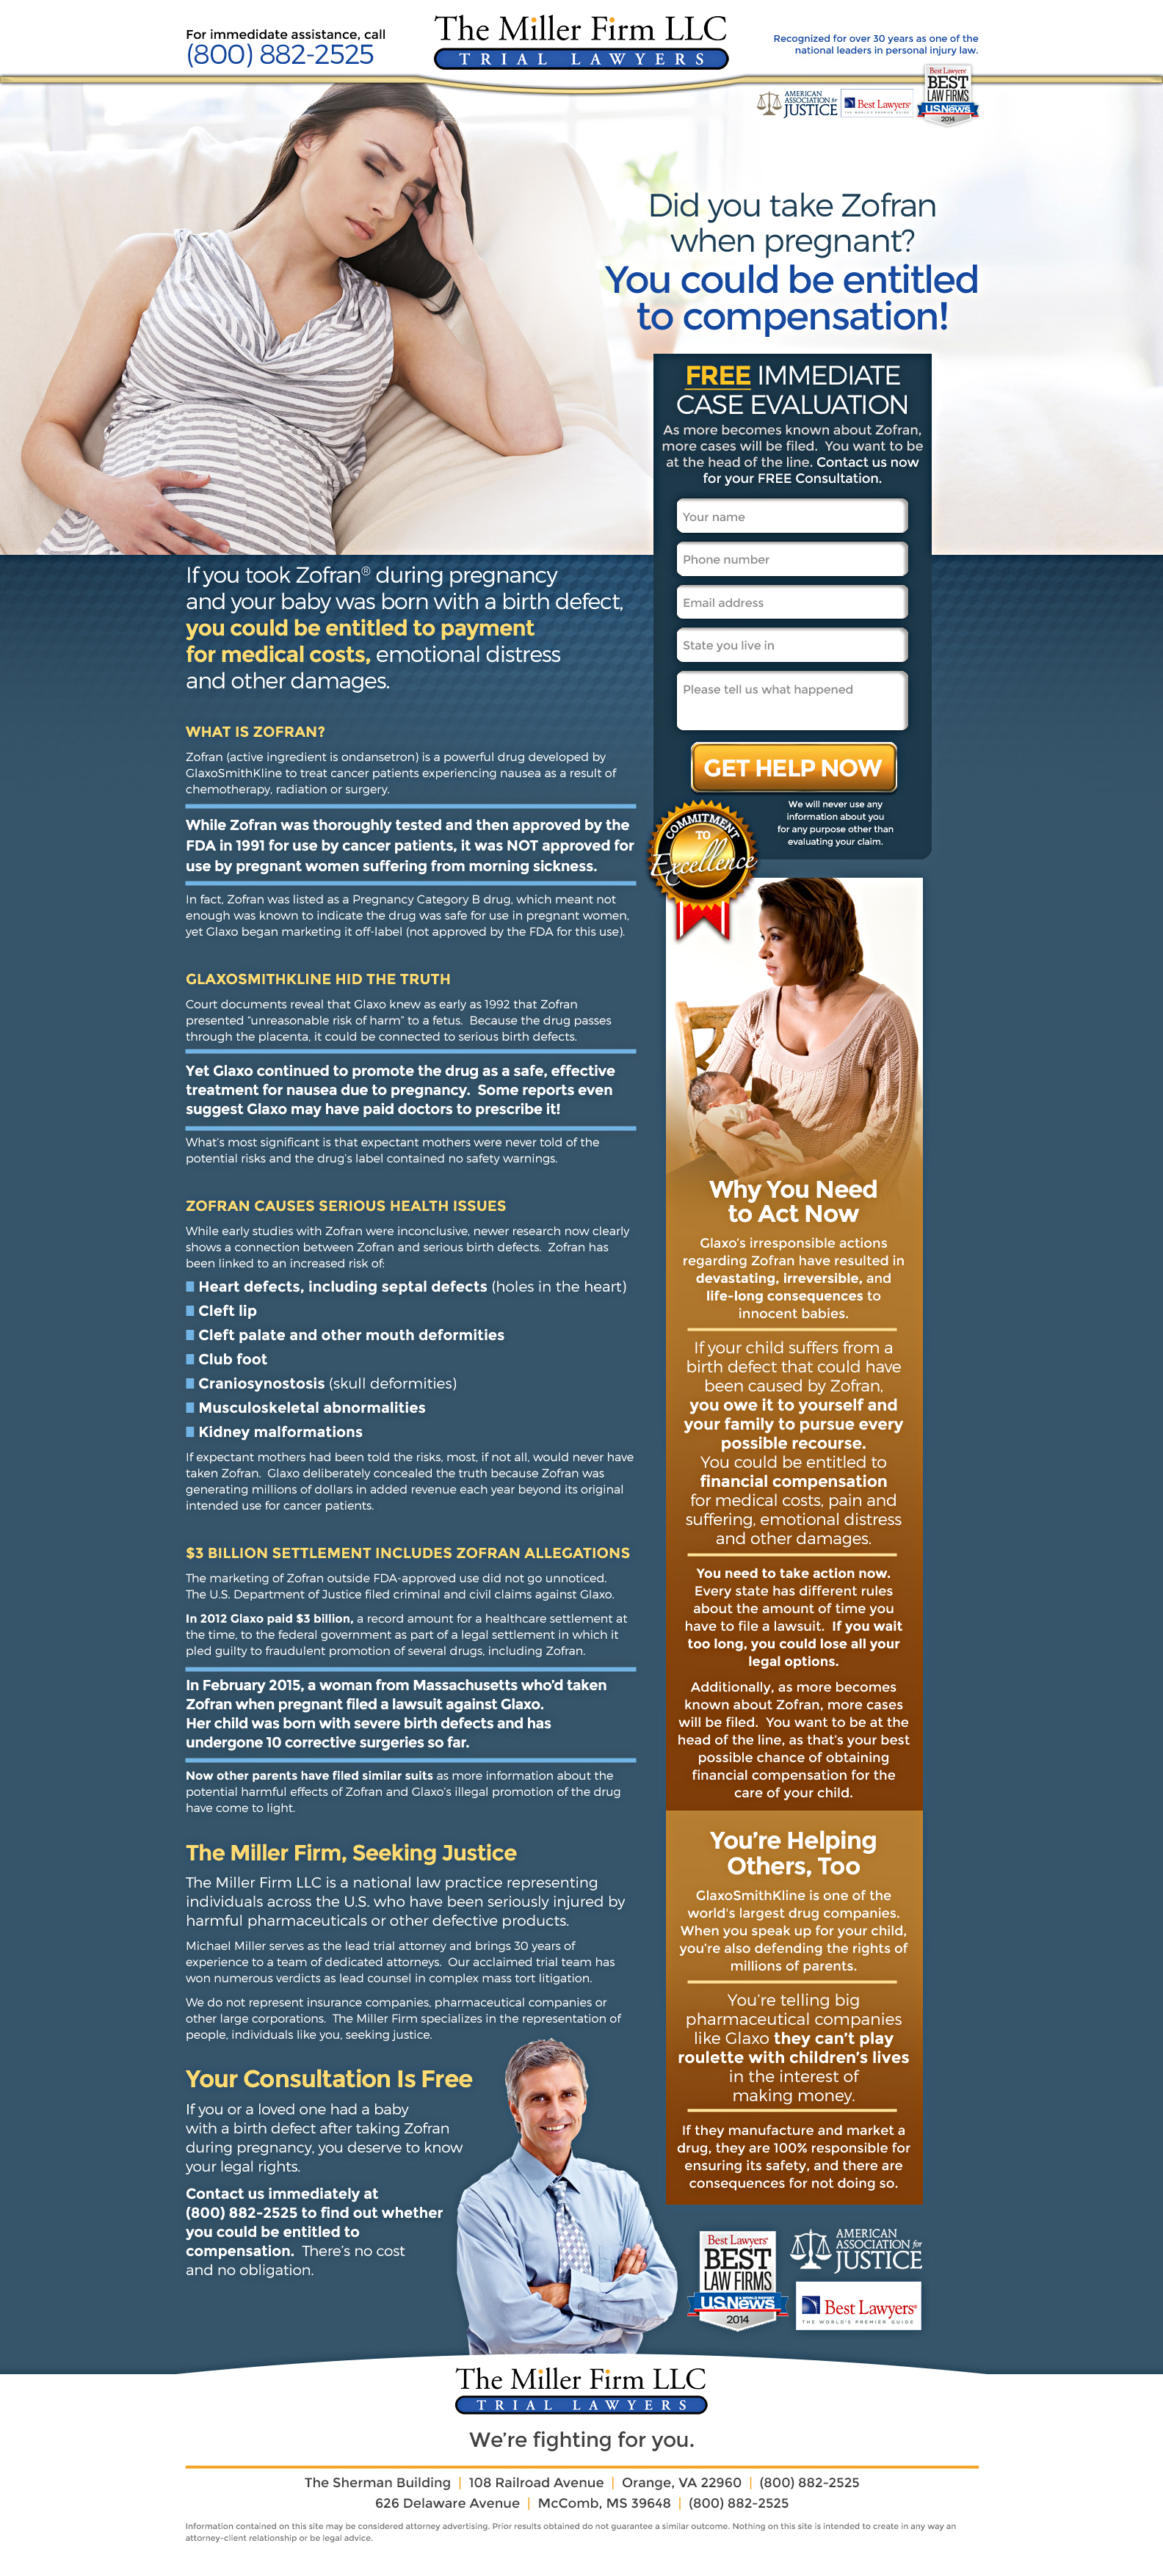 MILLER FIRM LANDING PAGE 2 COMP (2)